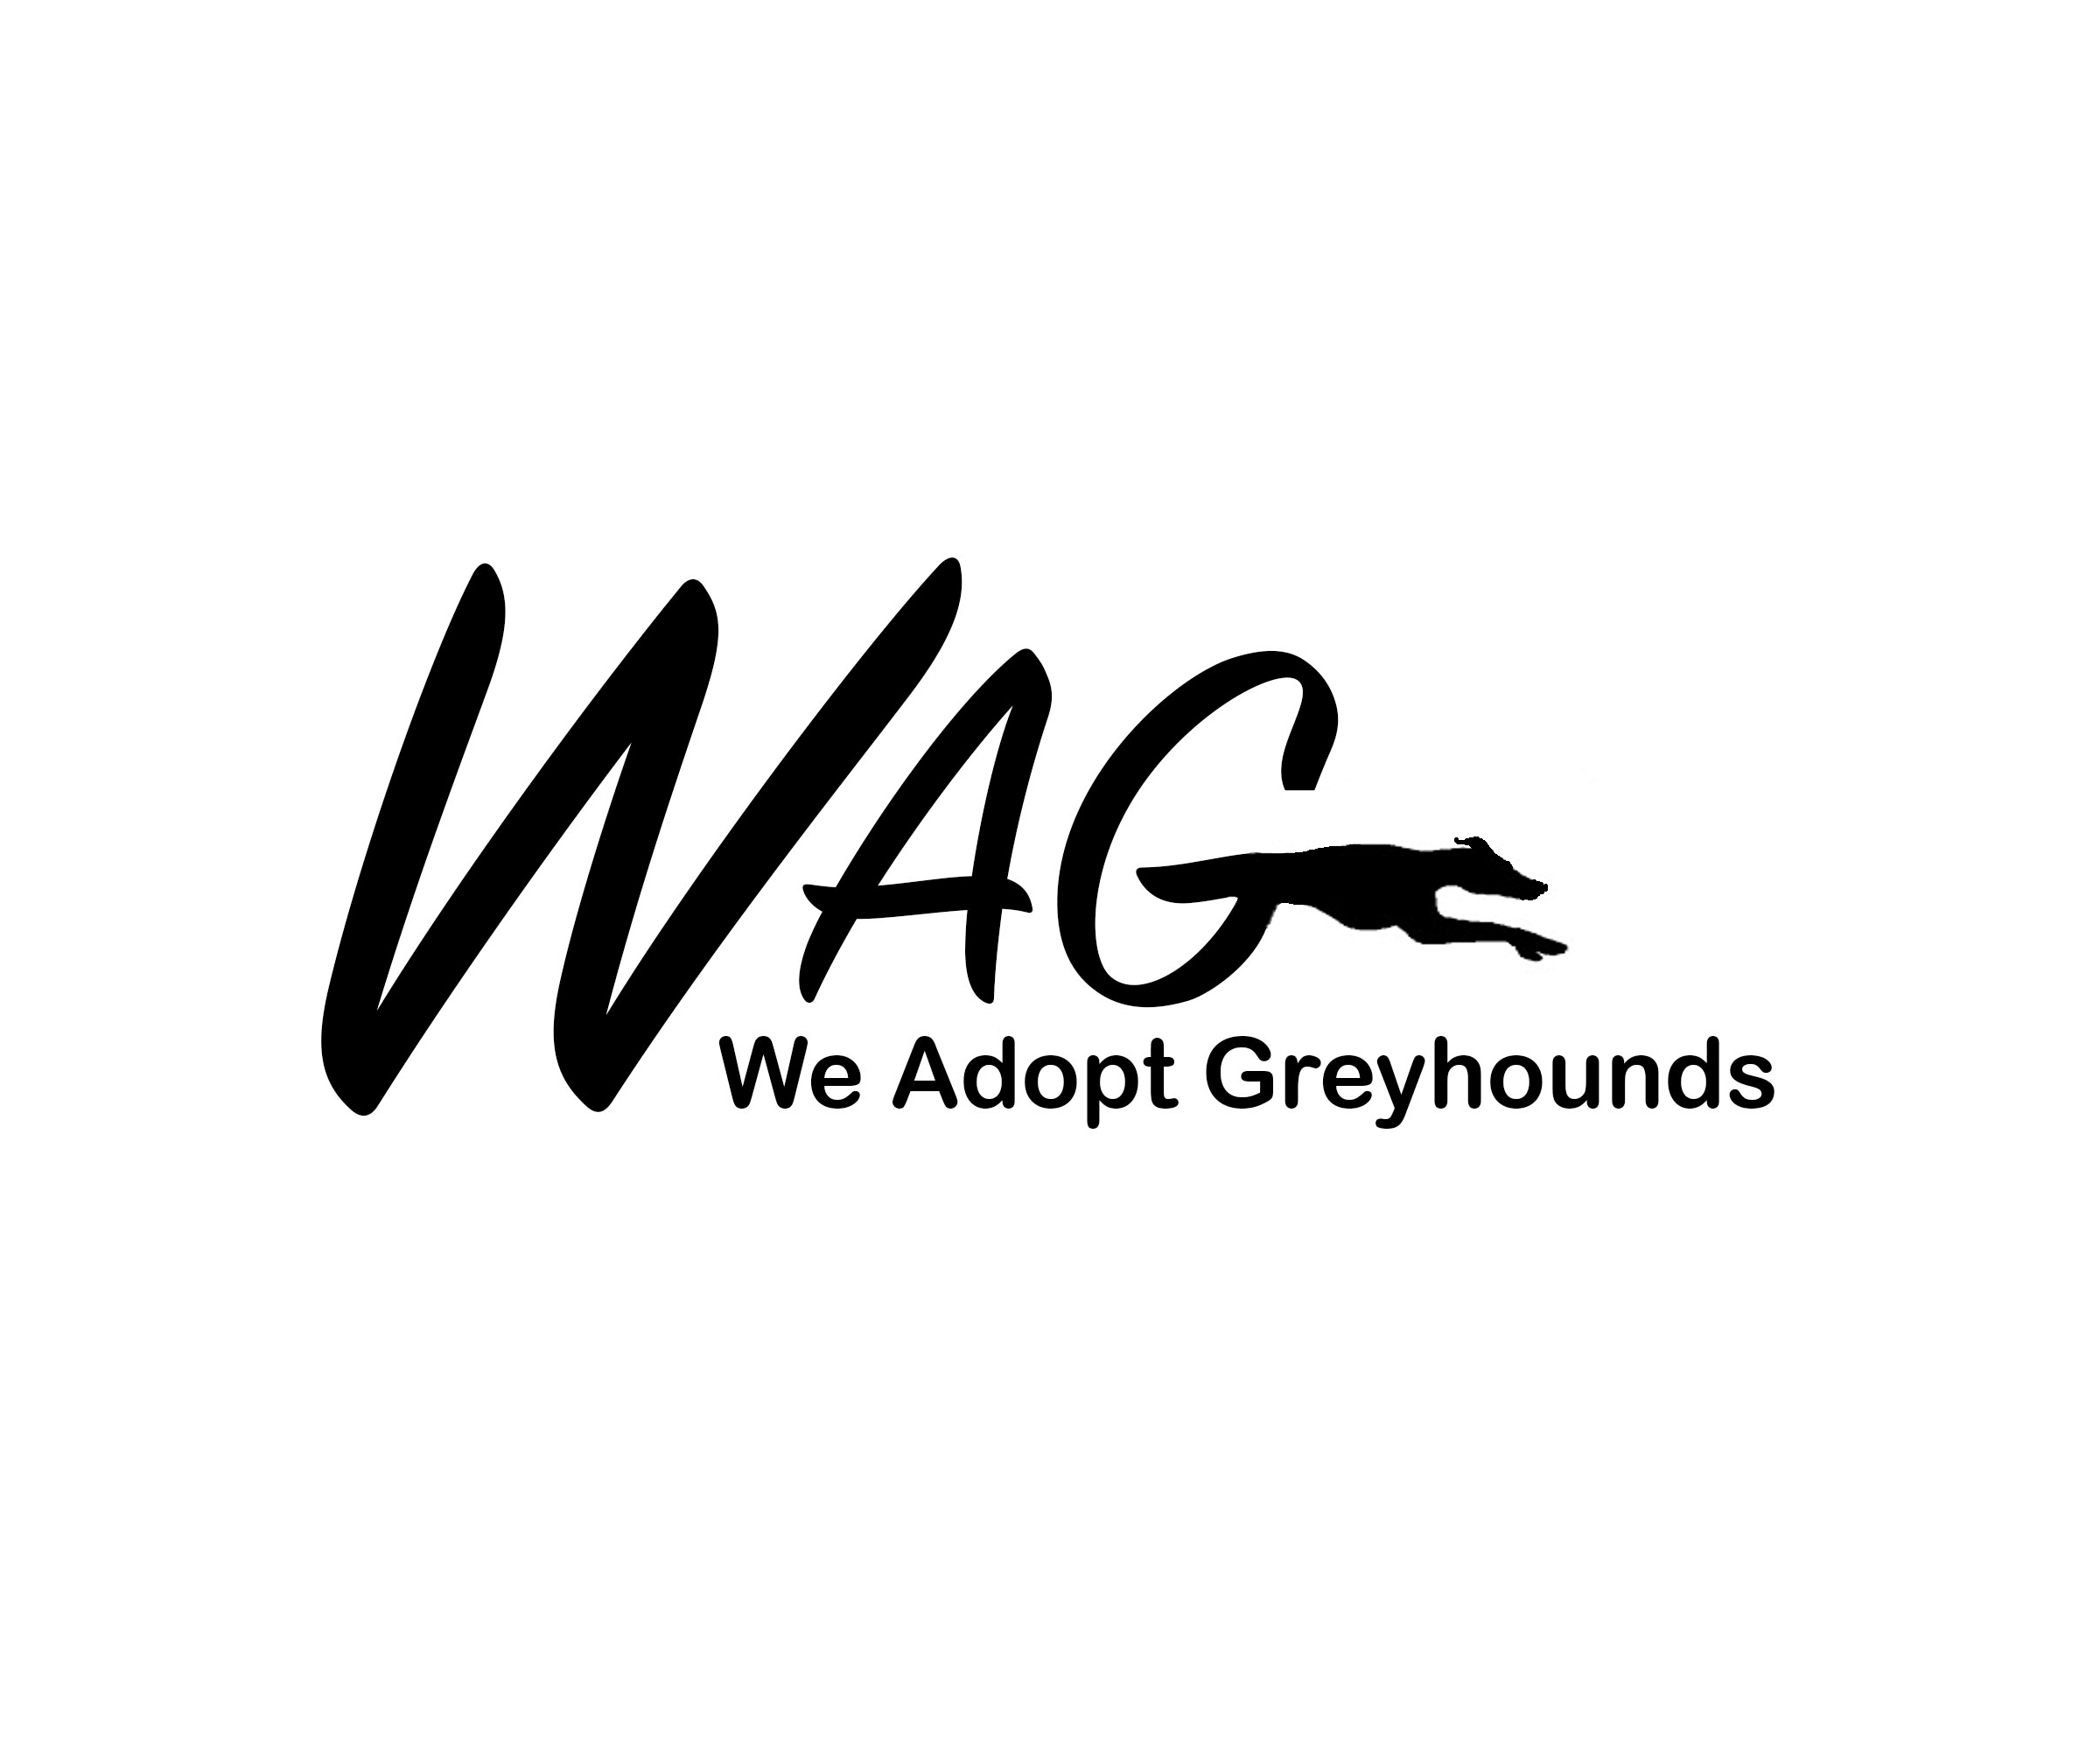 We Adopt Greyhounds, Inc.